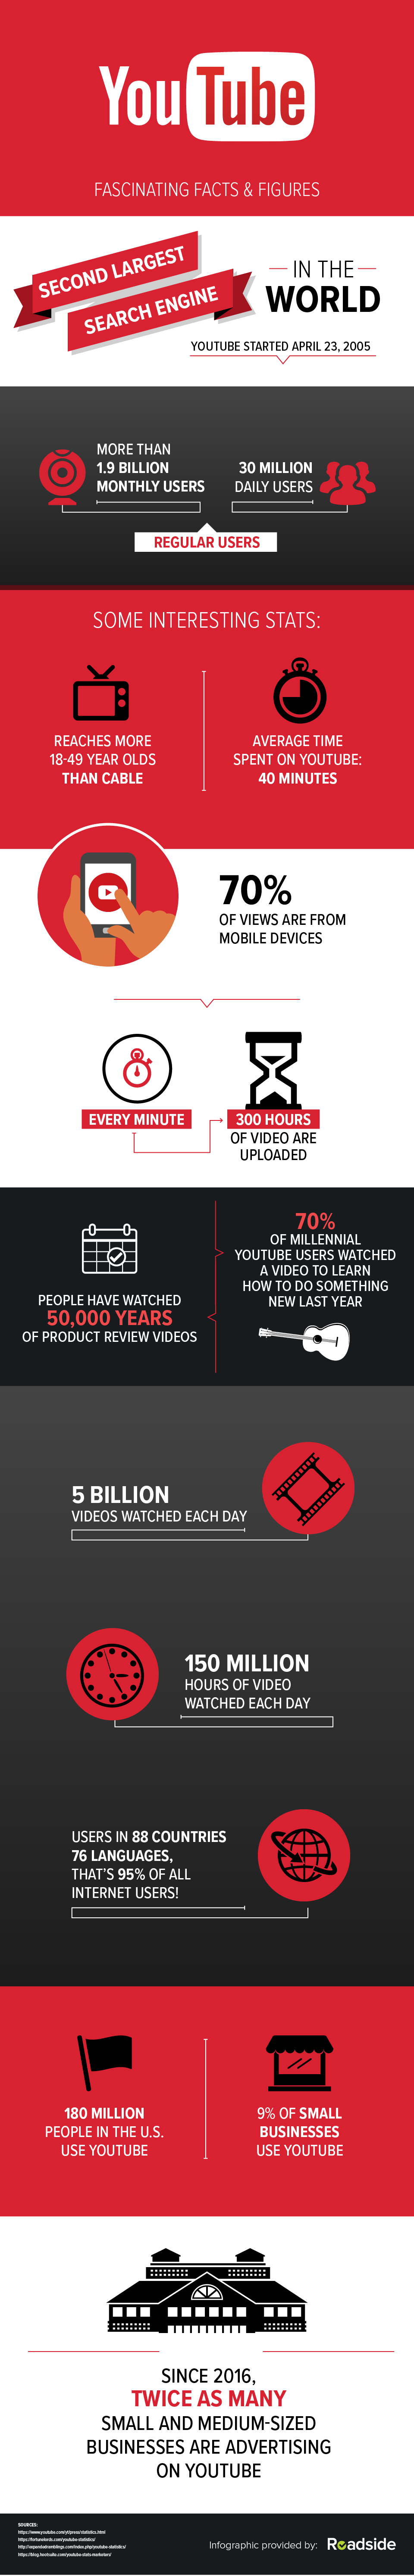 Infographic featuring facts about the second largest search engine: YouTube